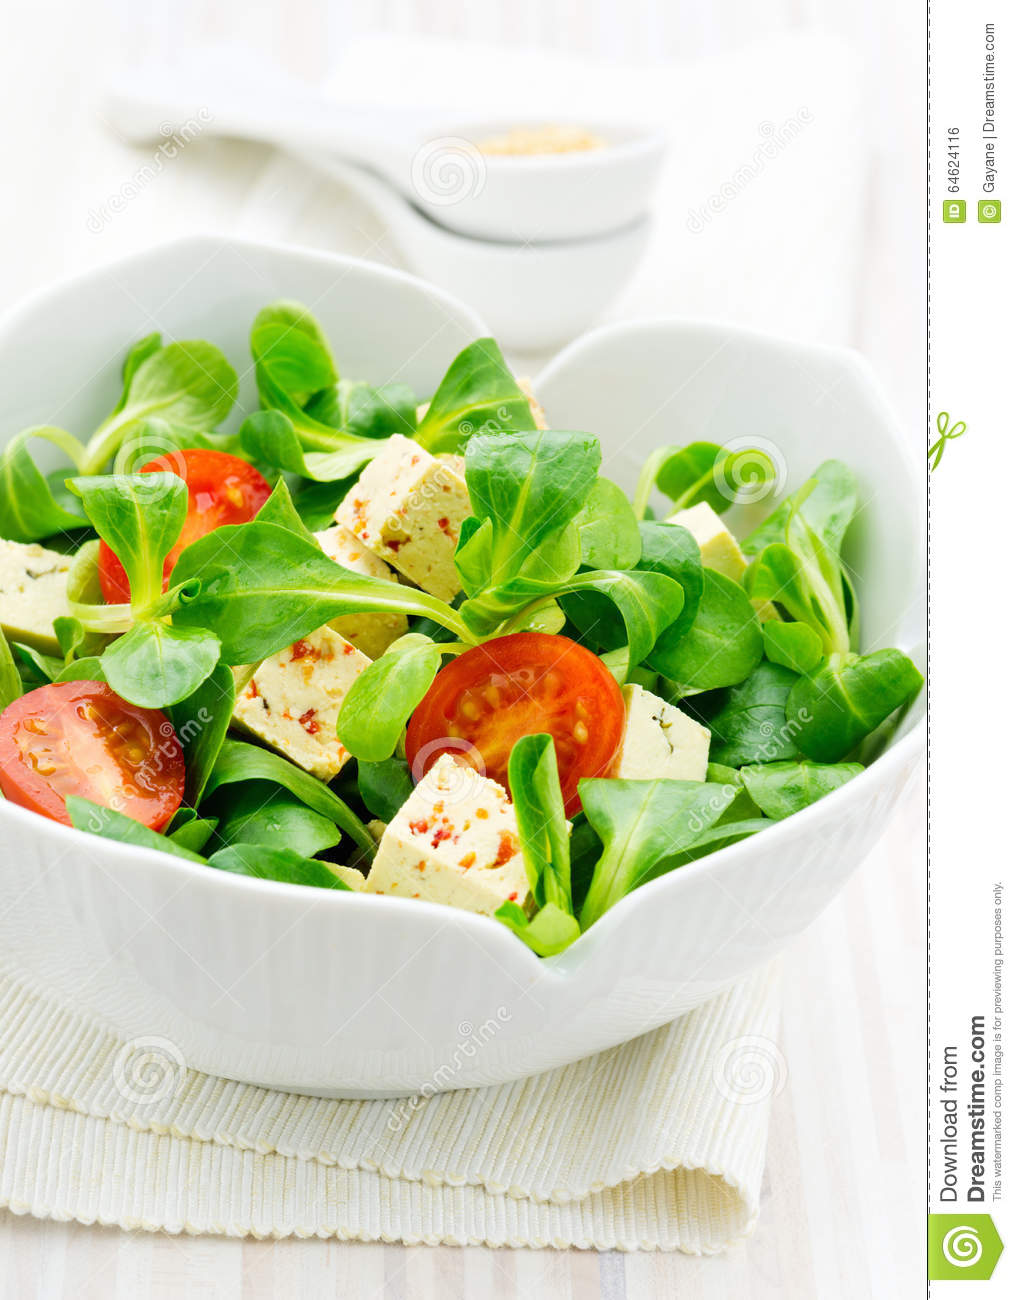 Healthy Asian style salad stock photo. Image of greens - 64624116